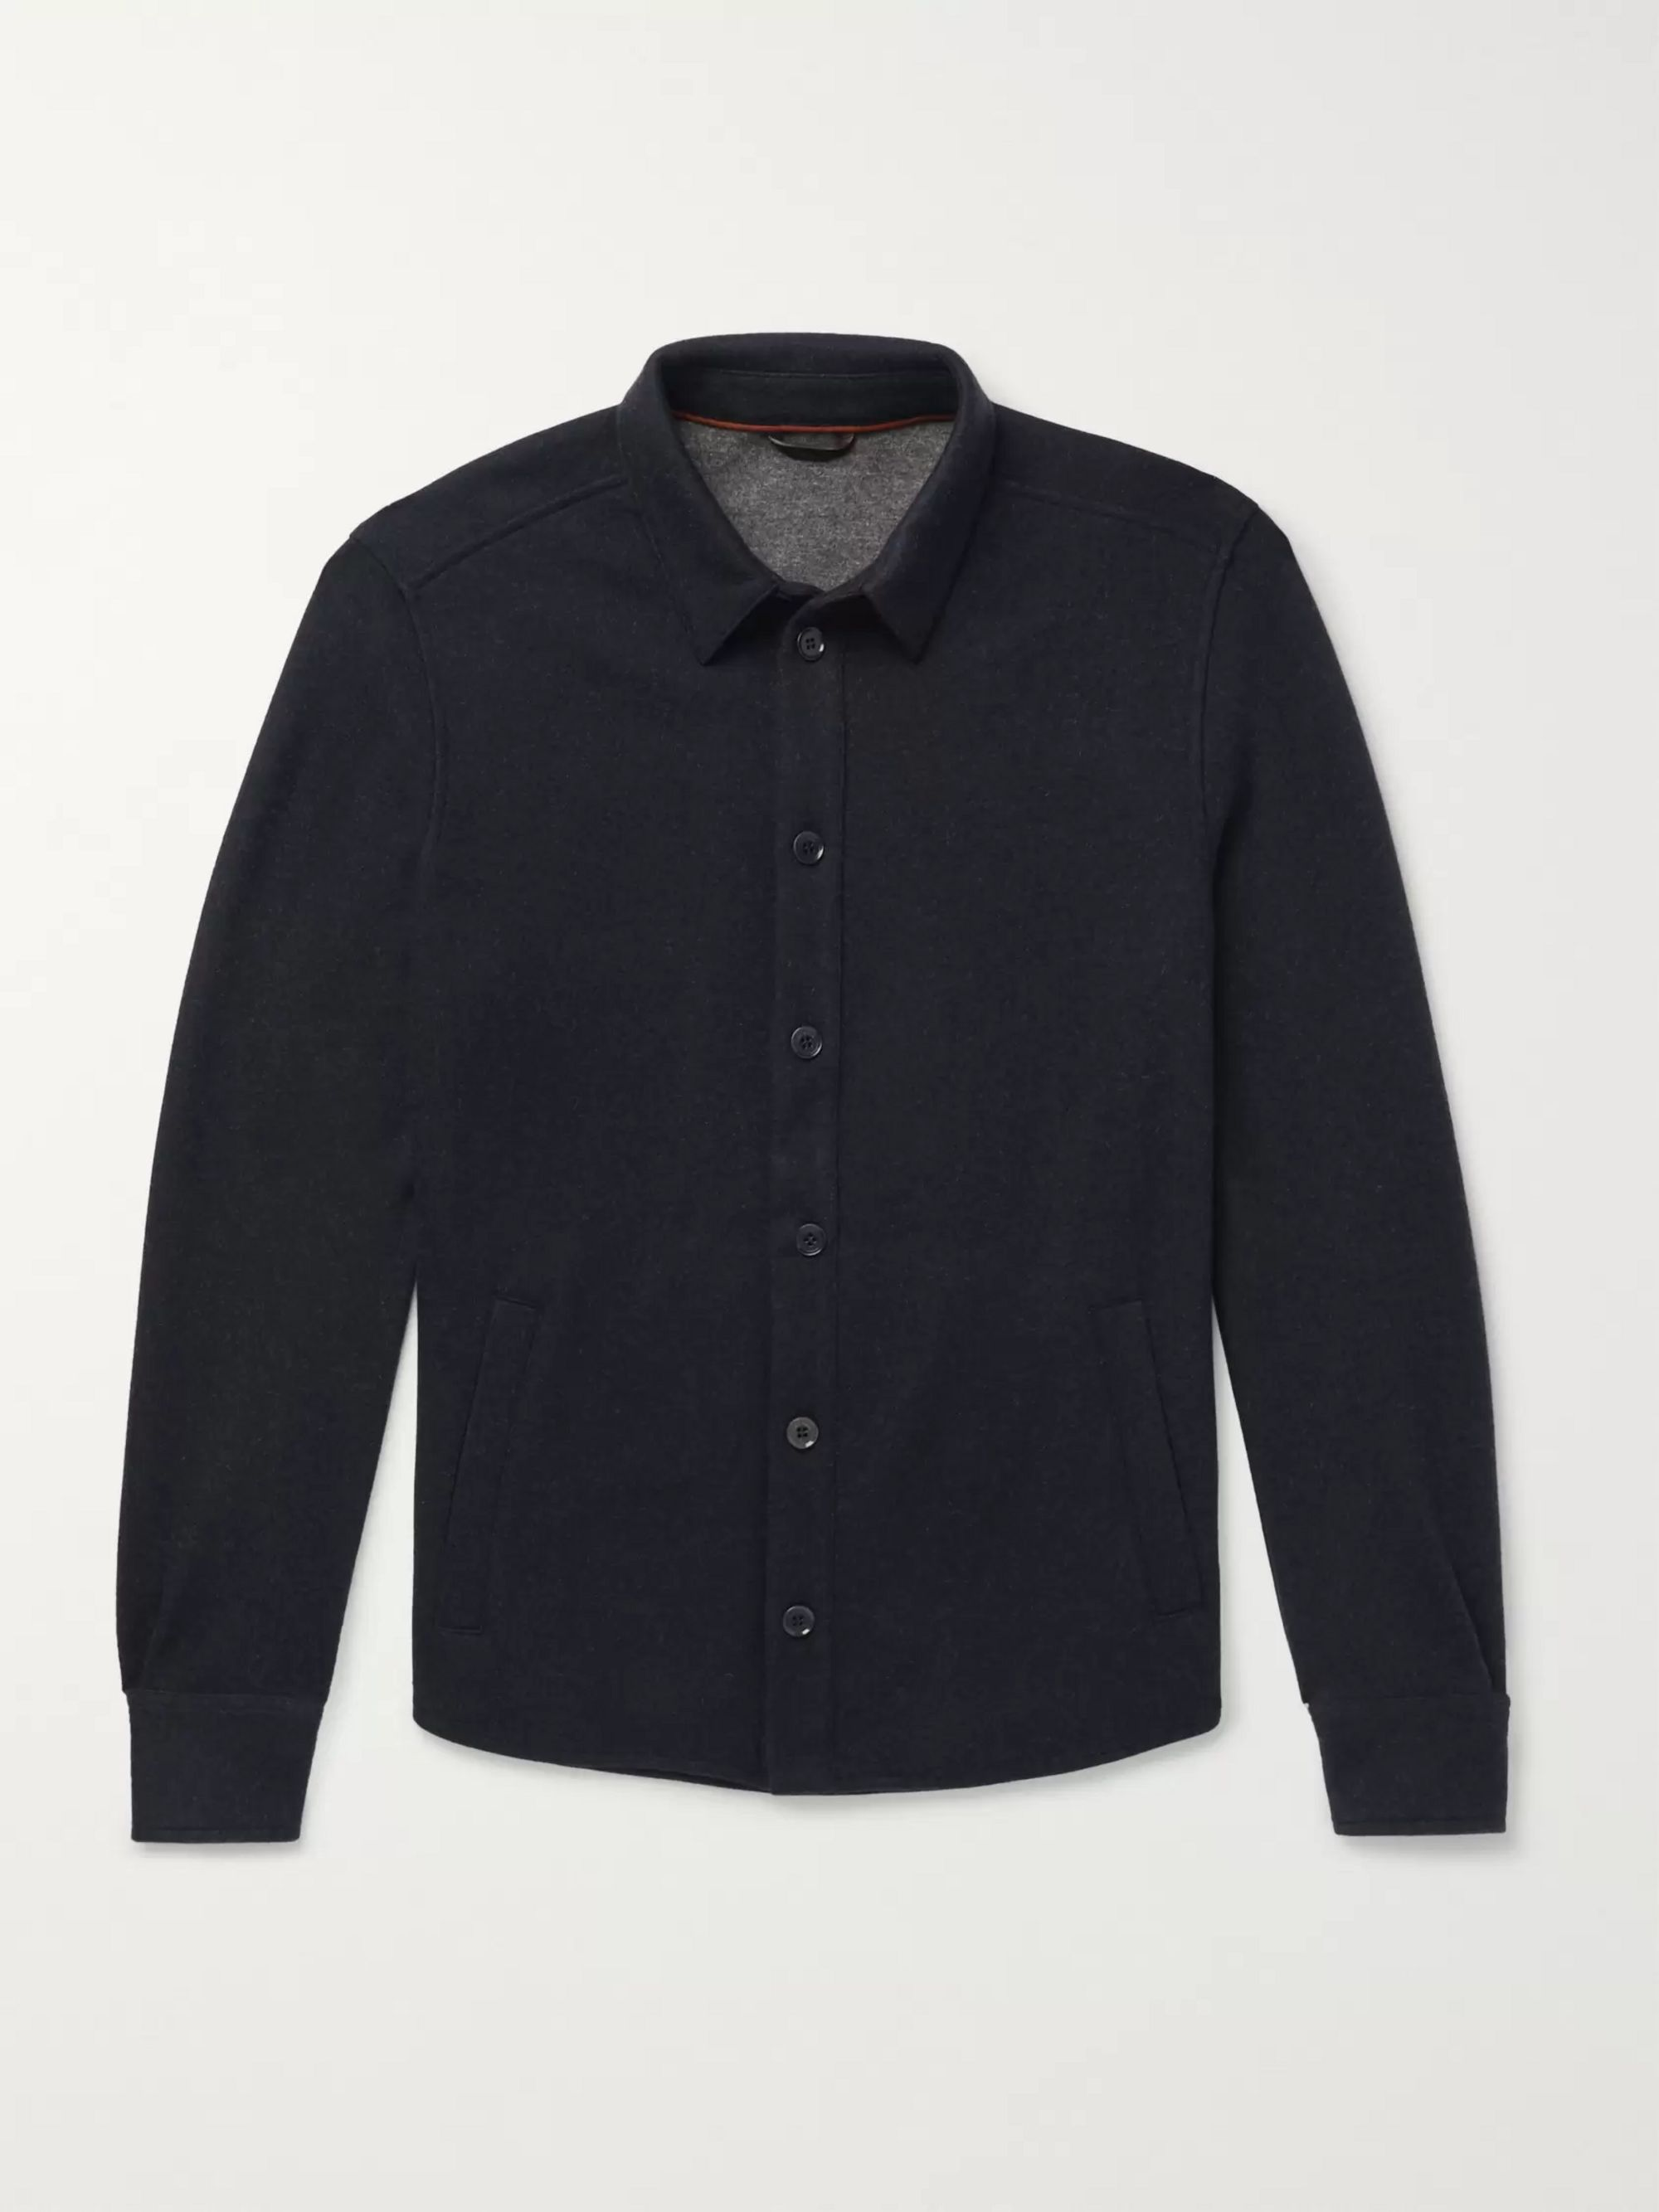 Loro Piana Suede-Trimmed Mélange Cashmere-Blend Overshirt